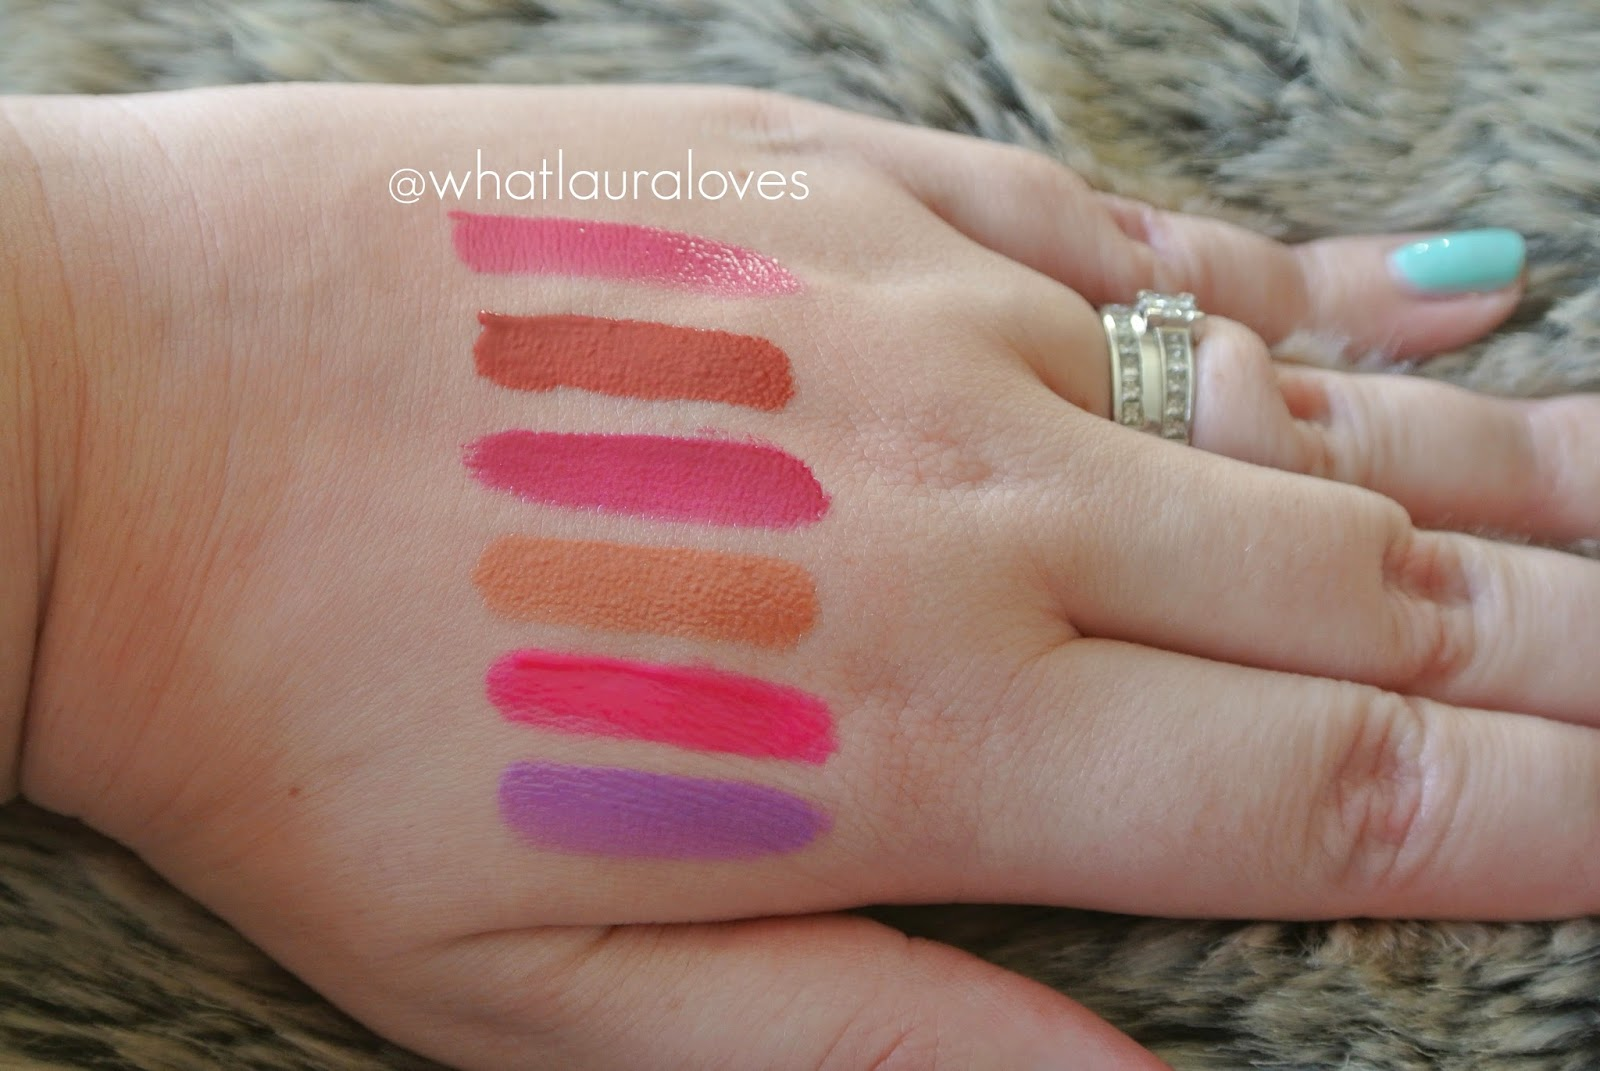 Makeup Revolution Salvation Intense Lip Lacquer Review and Swatches